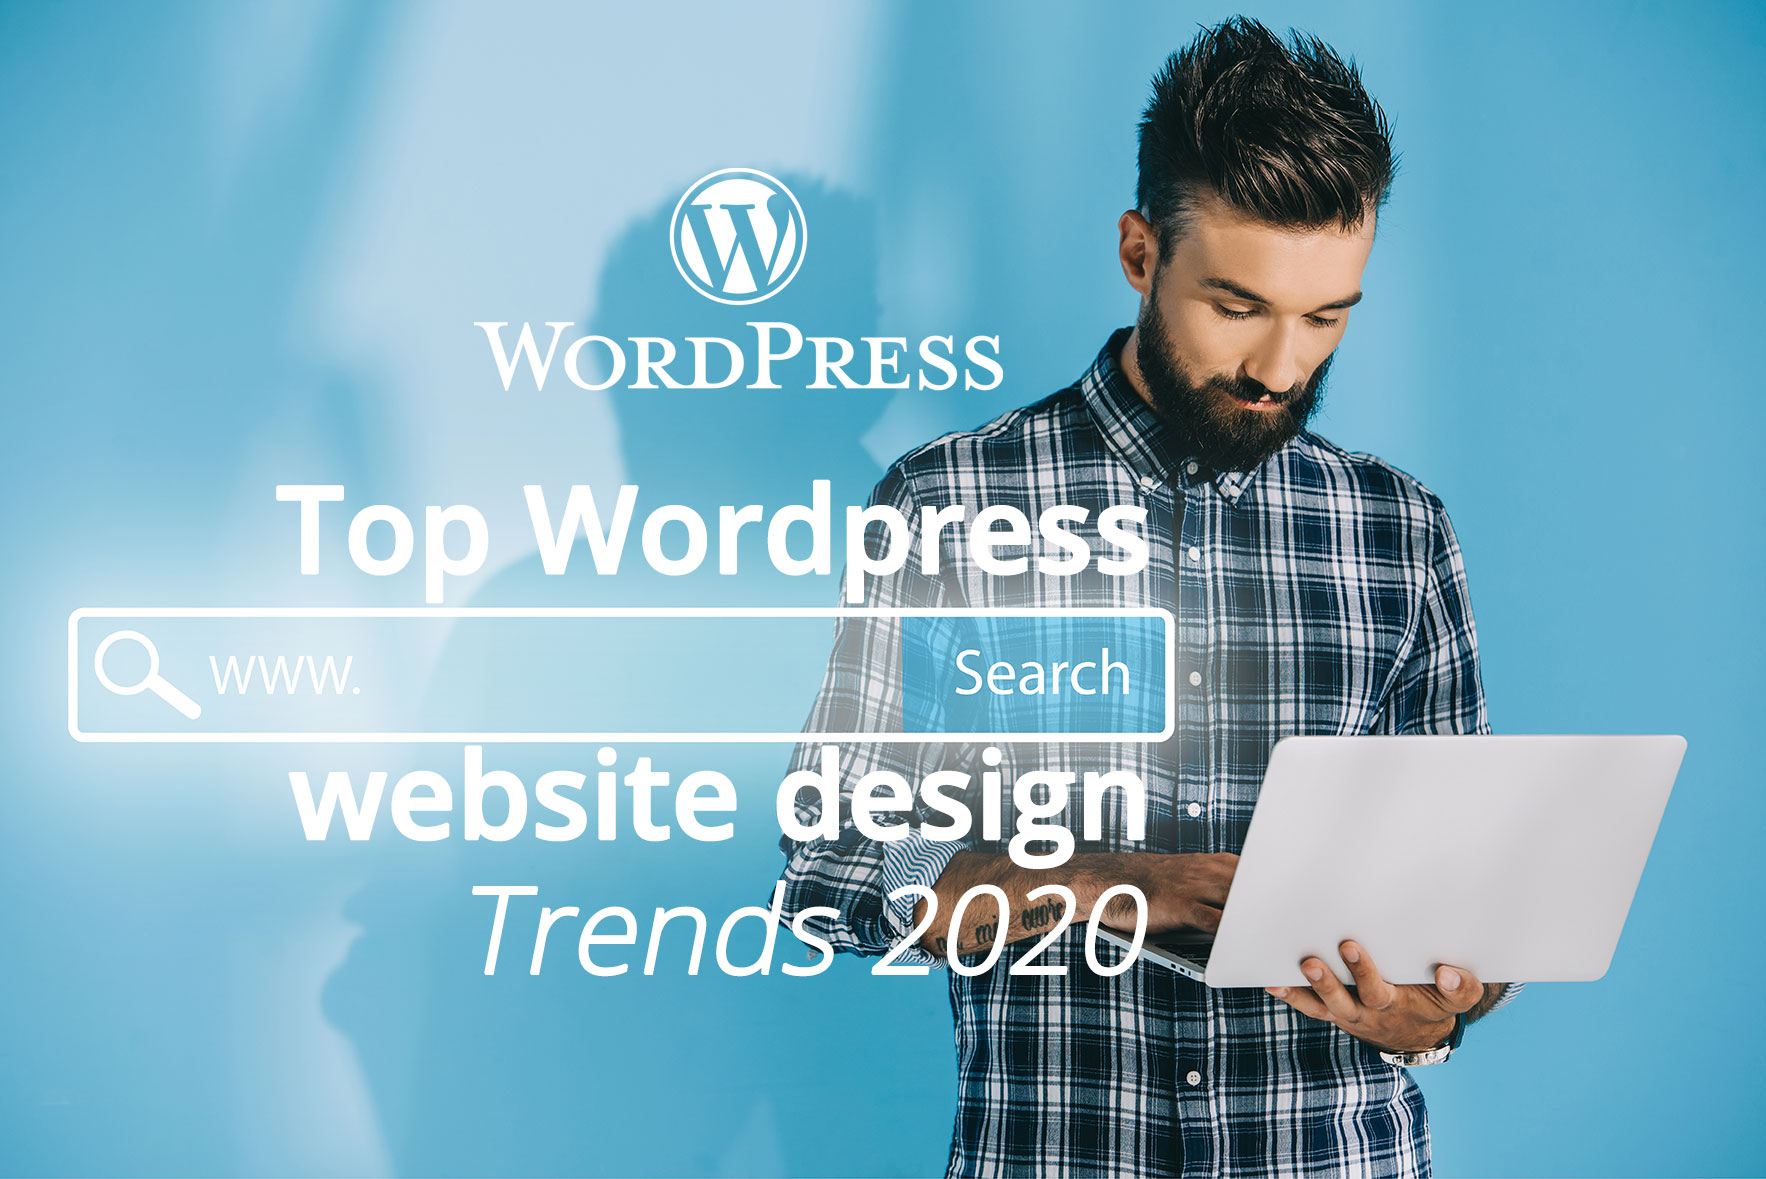 top 5 wordpress design trends 2020 wiidoo media website design agency marbella